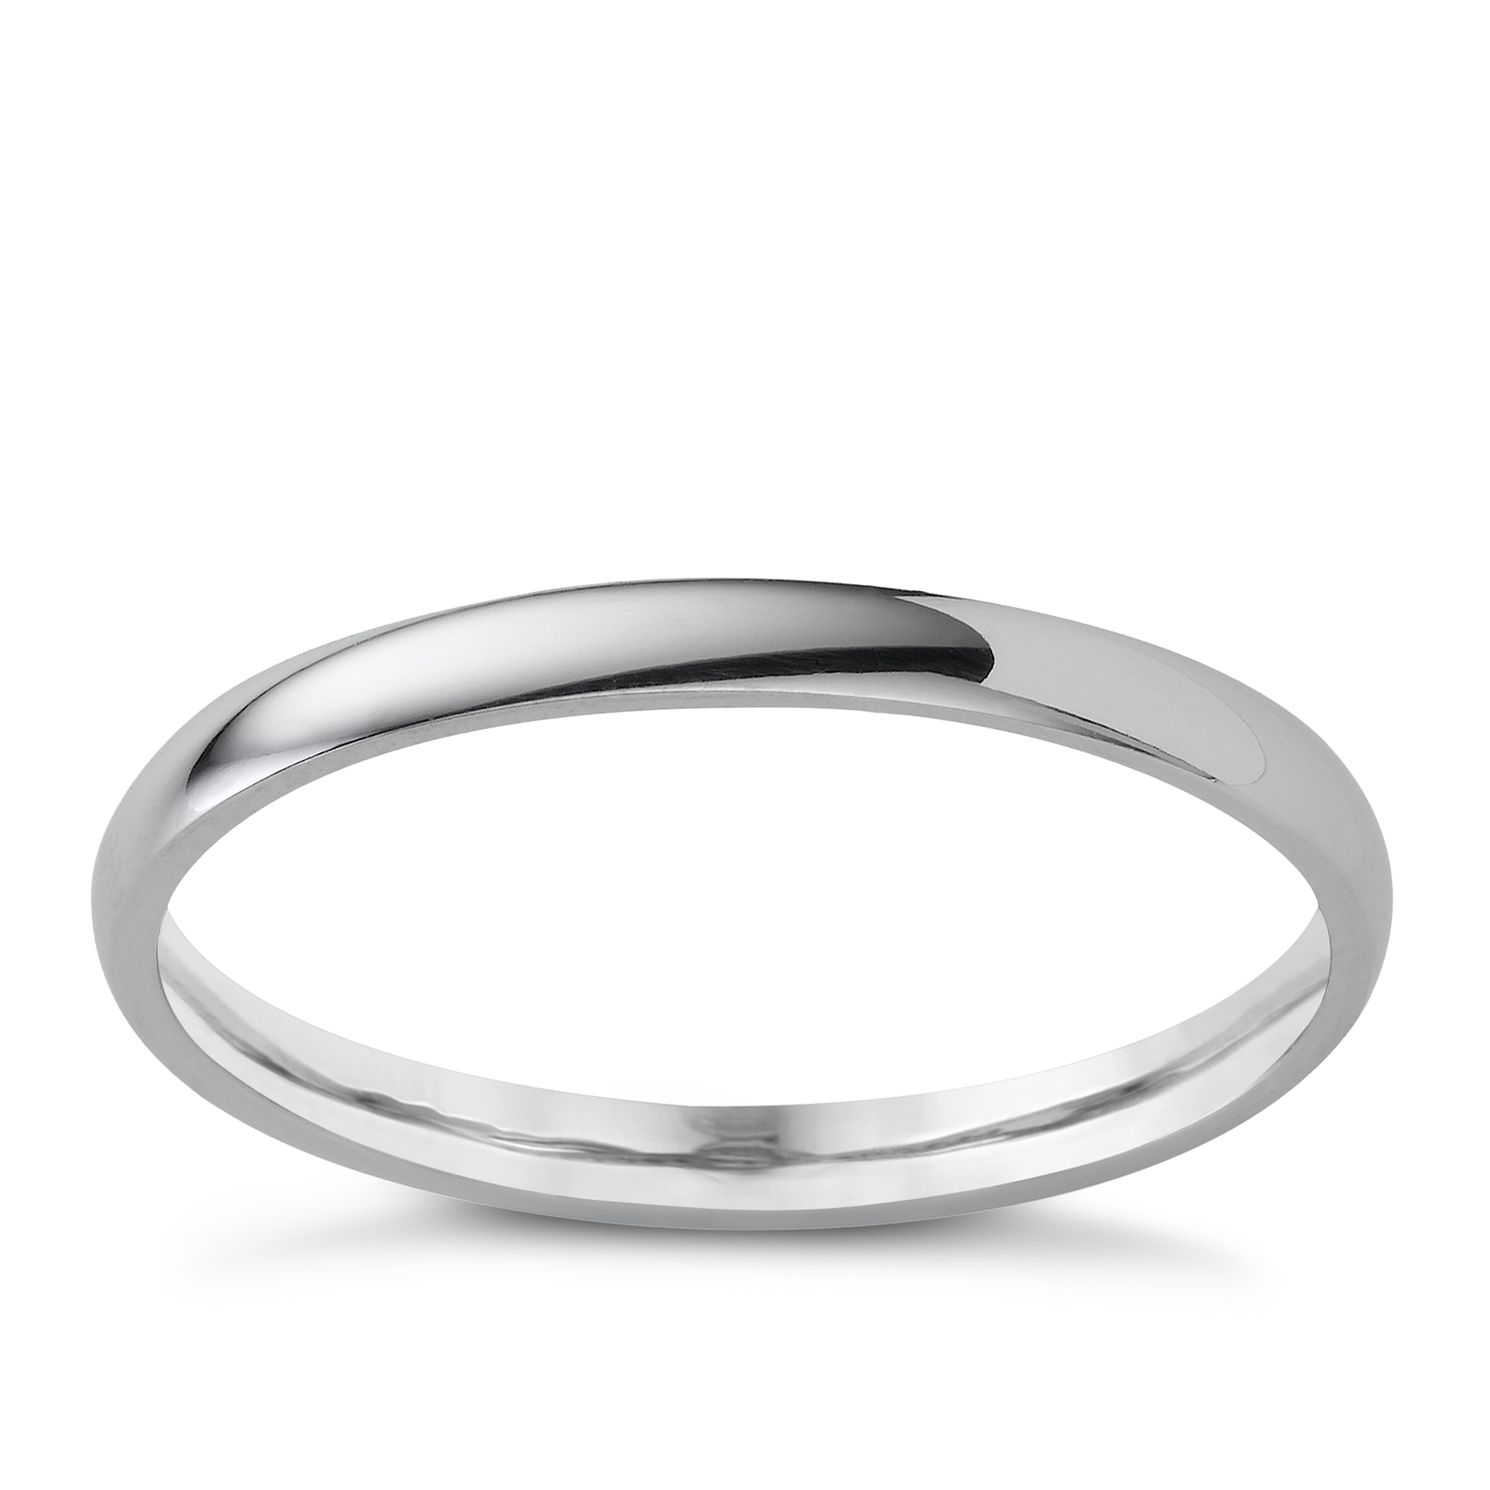 jewelry wedding classic rings platinum p in shop for online ring